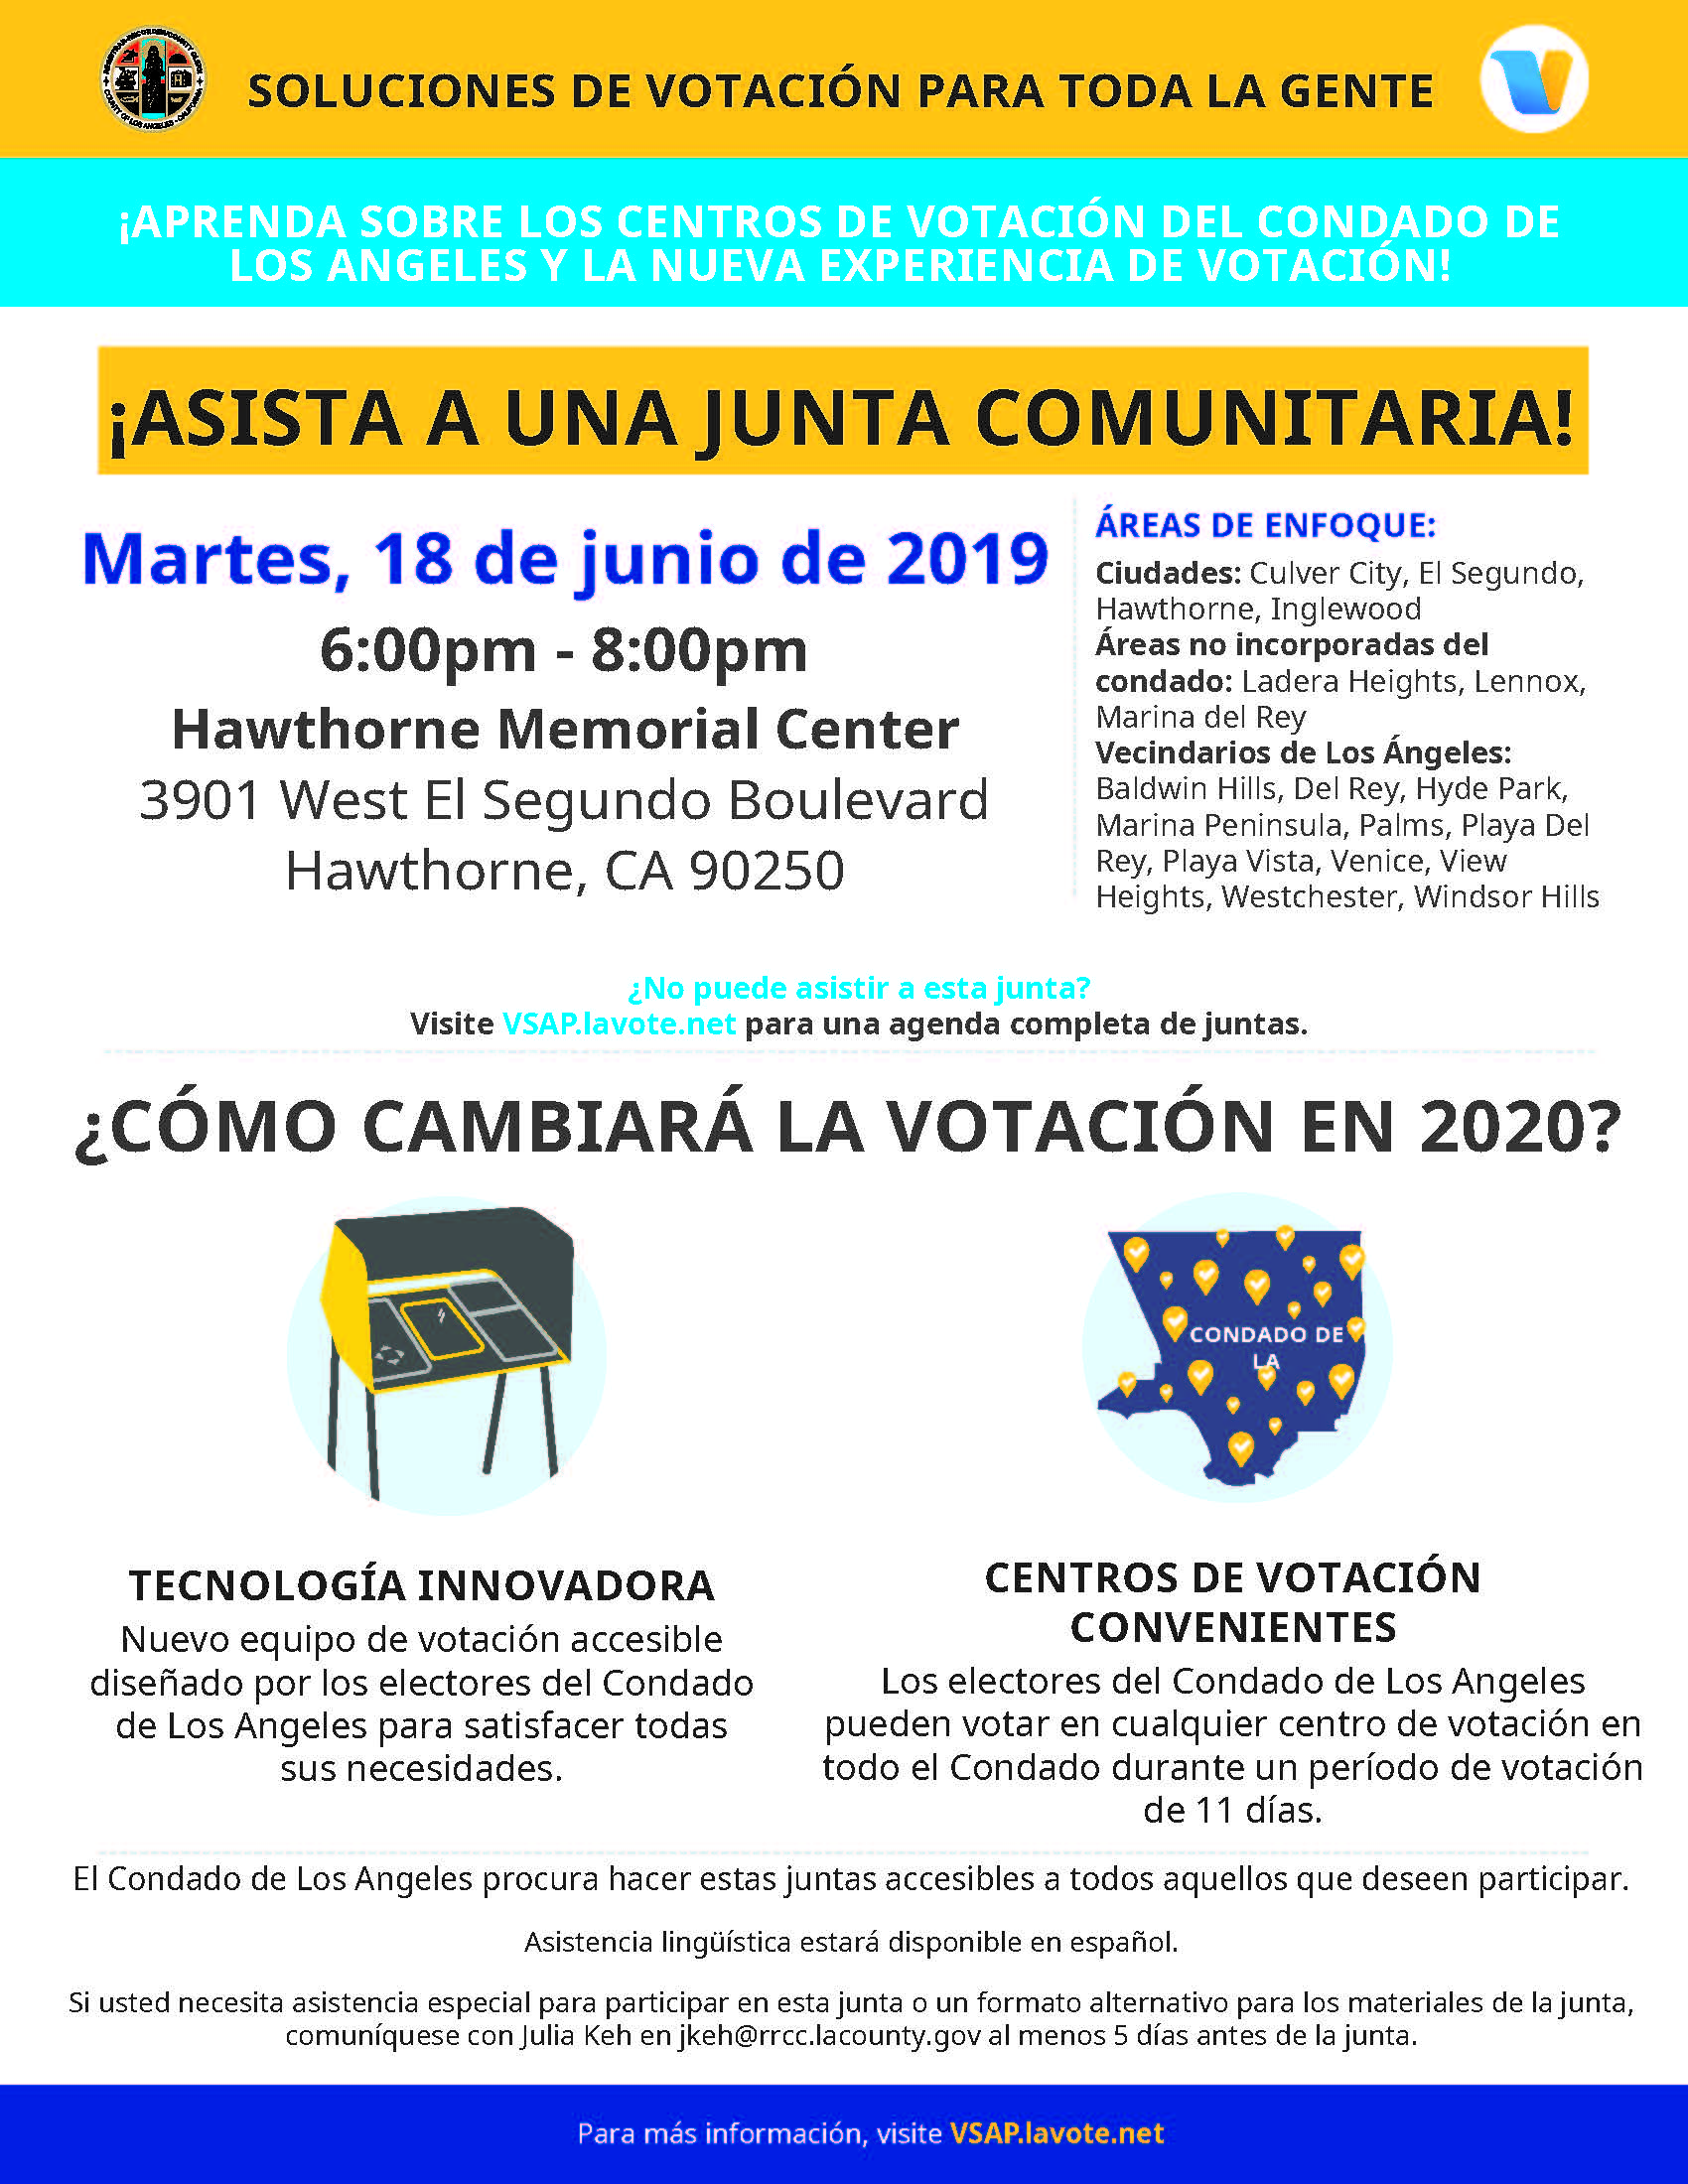 Voting Solutions for all People - Spanish